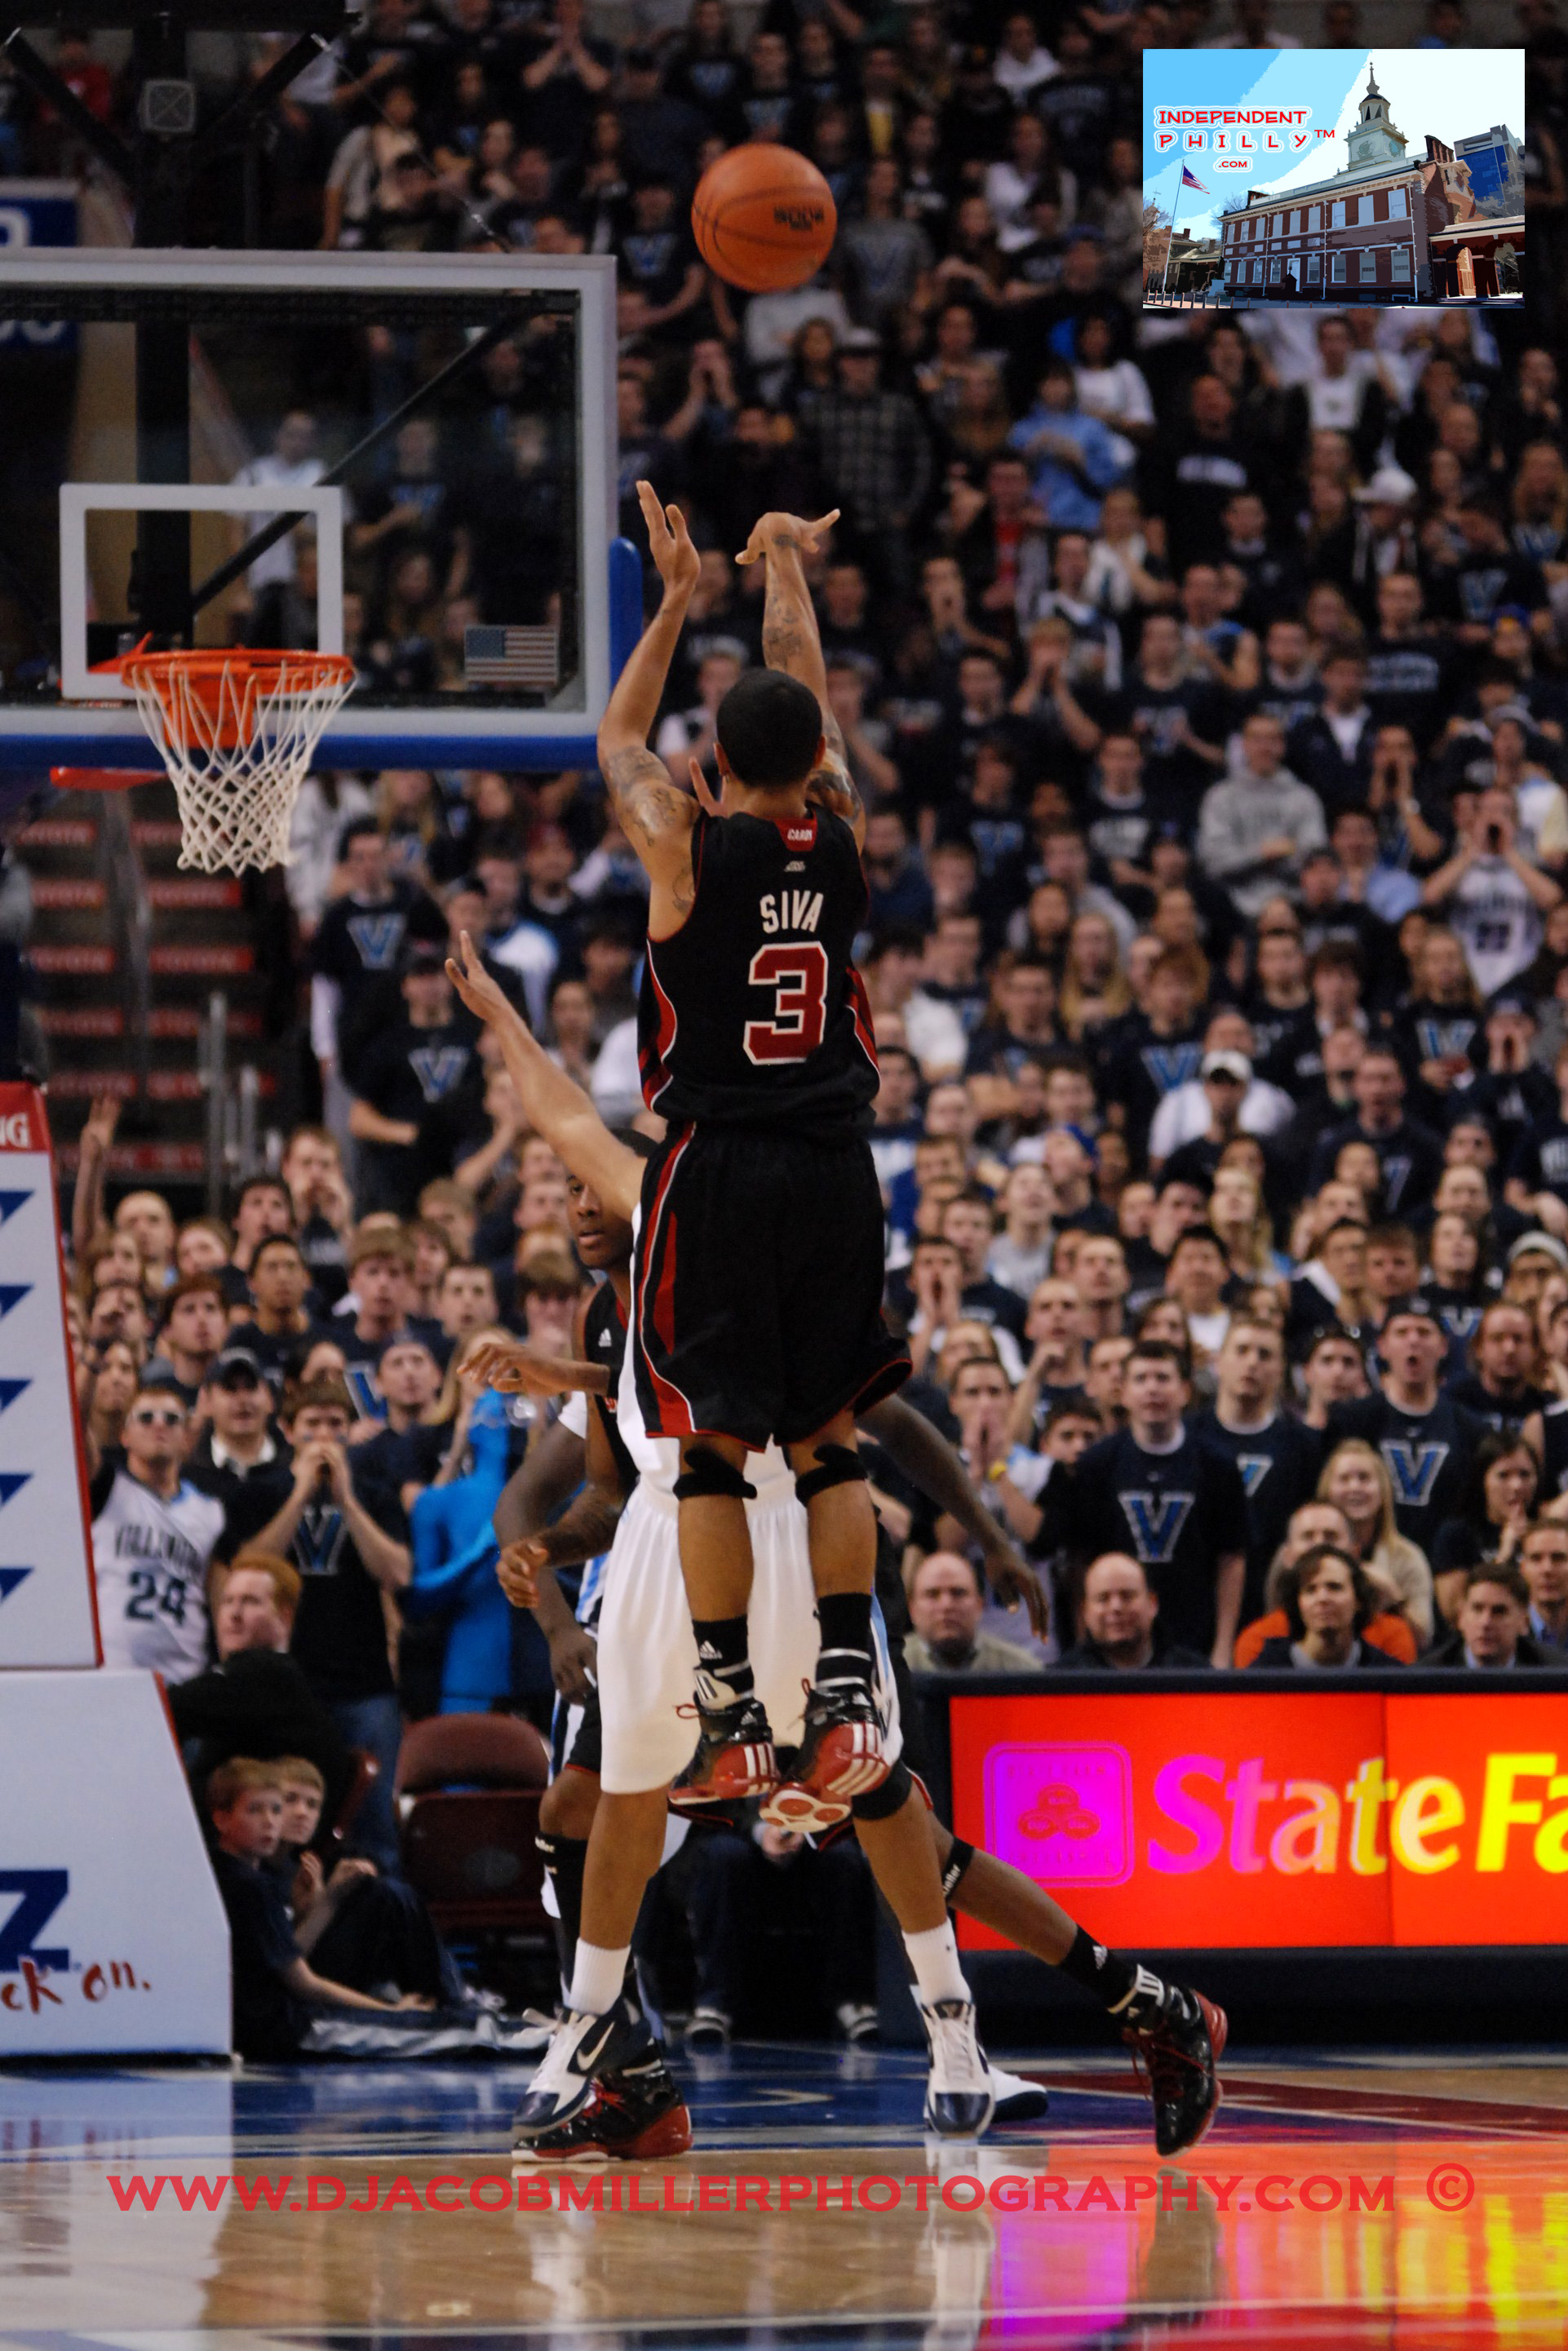 how to shoot a jump shot I need some real good details about shooting and foot work  but if you want some visual aids on how to shoot a proper jump shot, youtube has tons of videos.